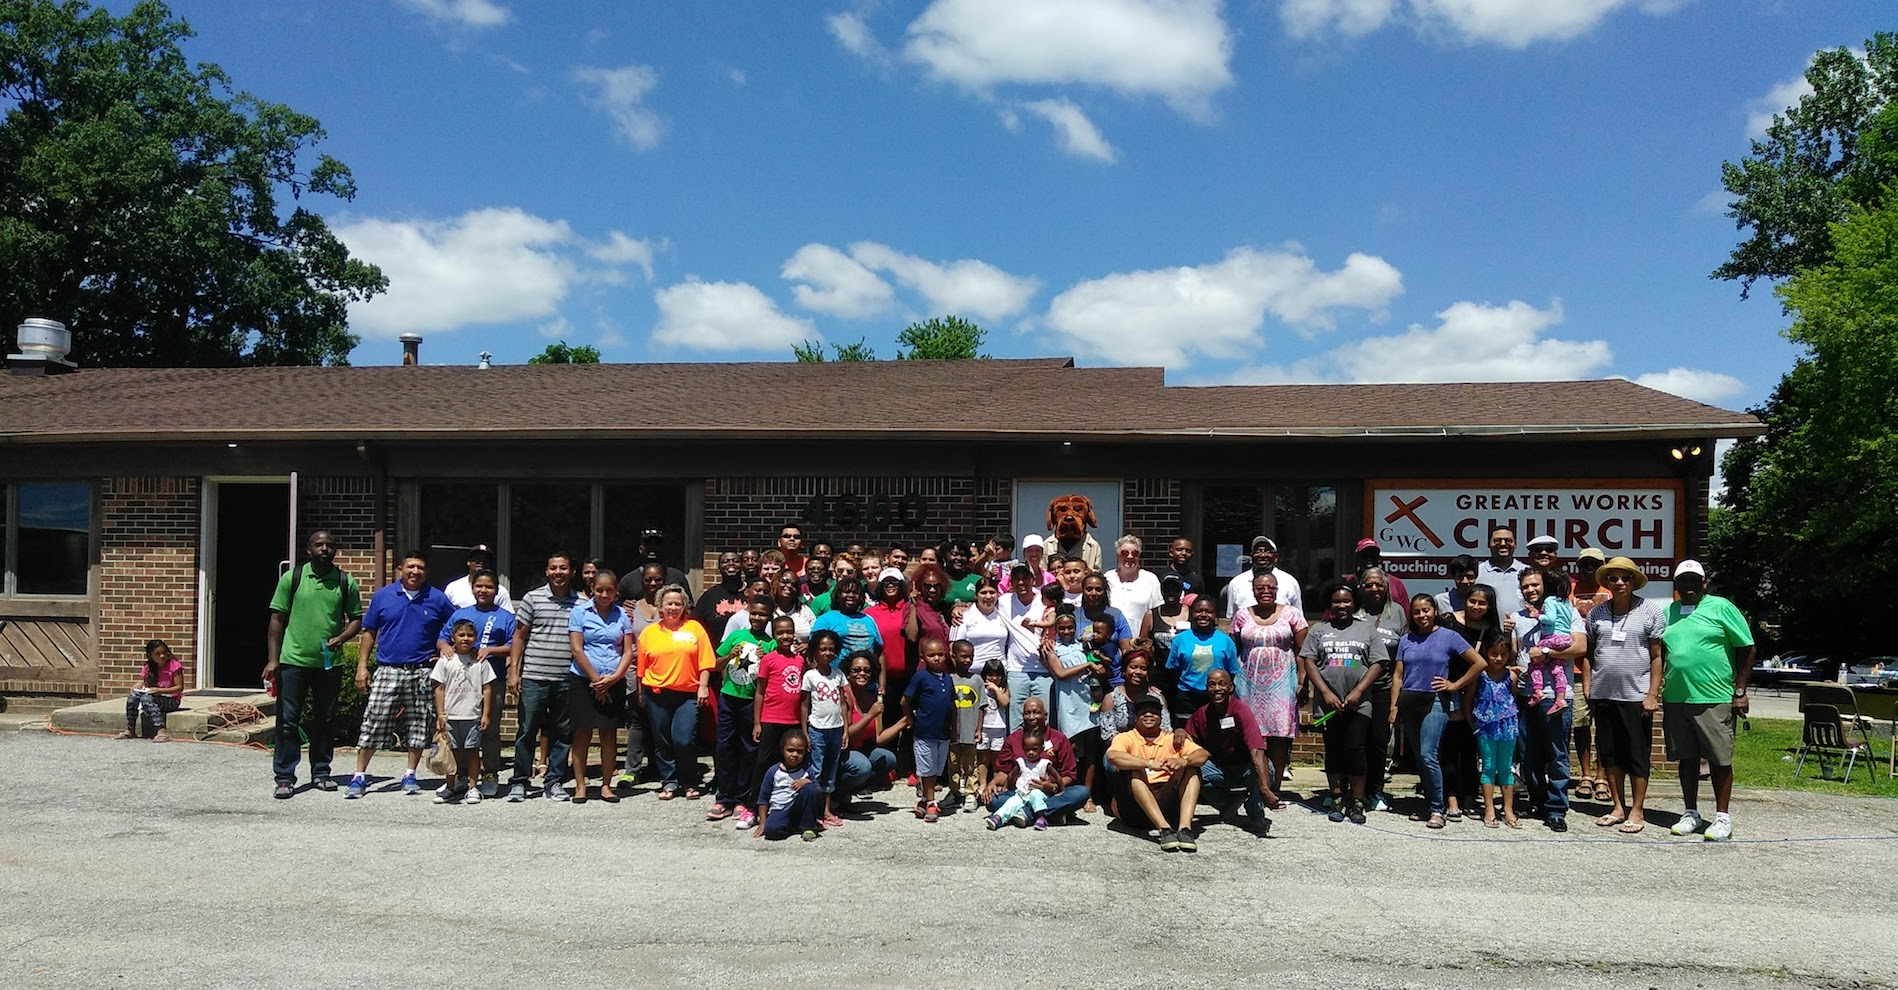 Greater Works Church block party group picture